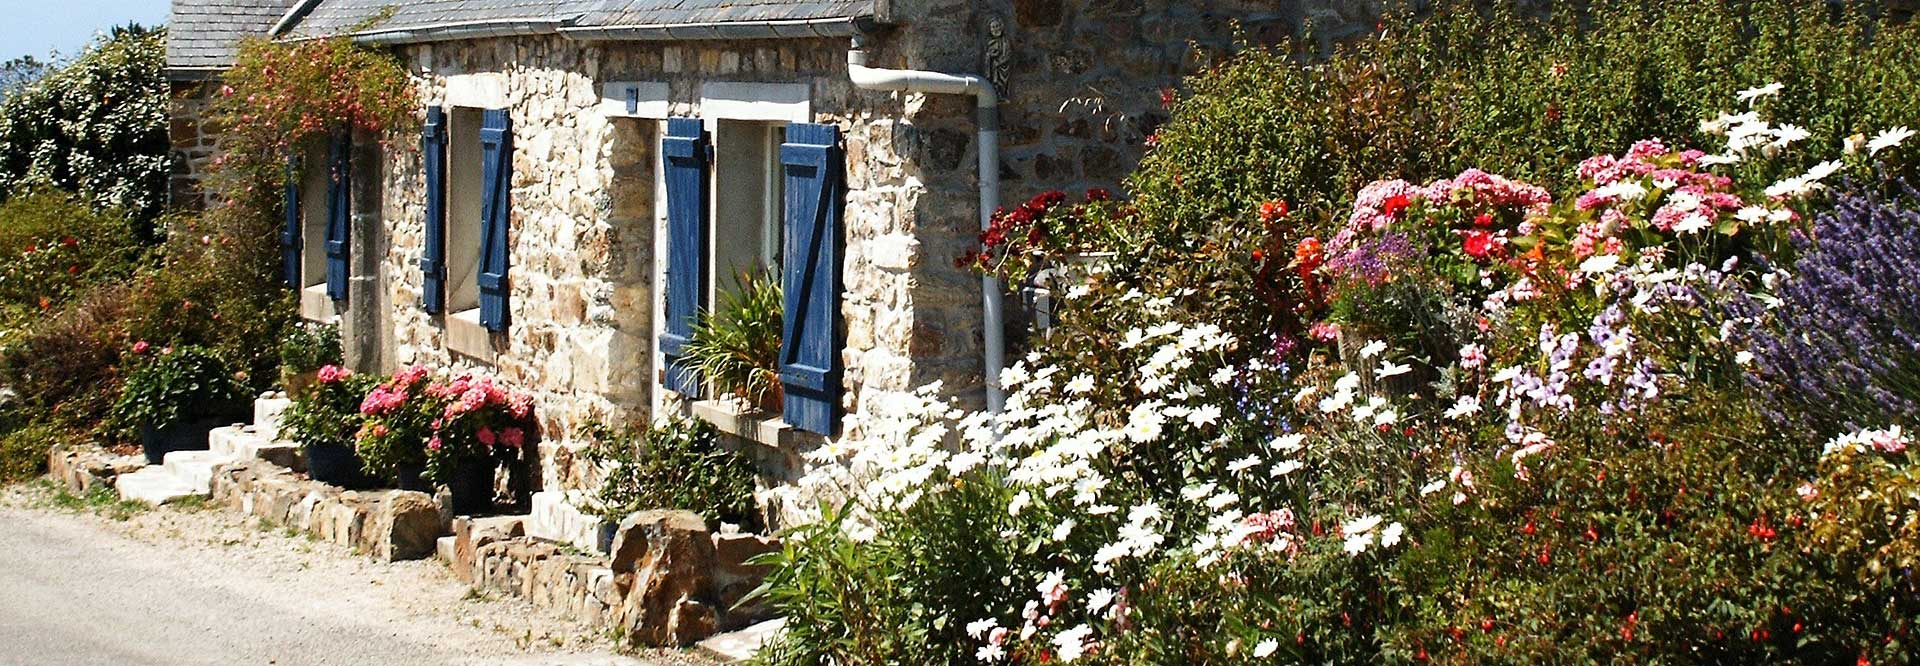 Holiday cottages in England, Scotland and Wales